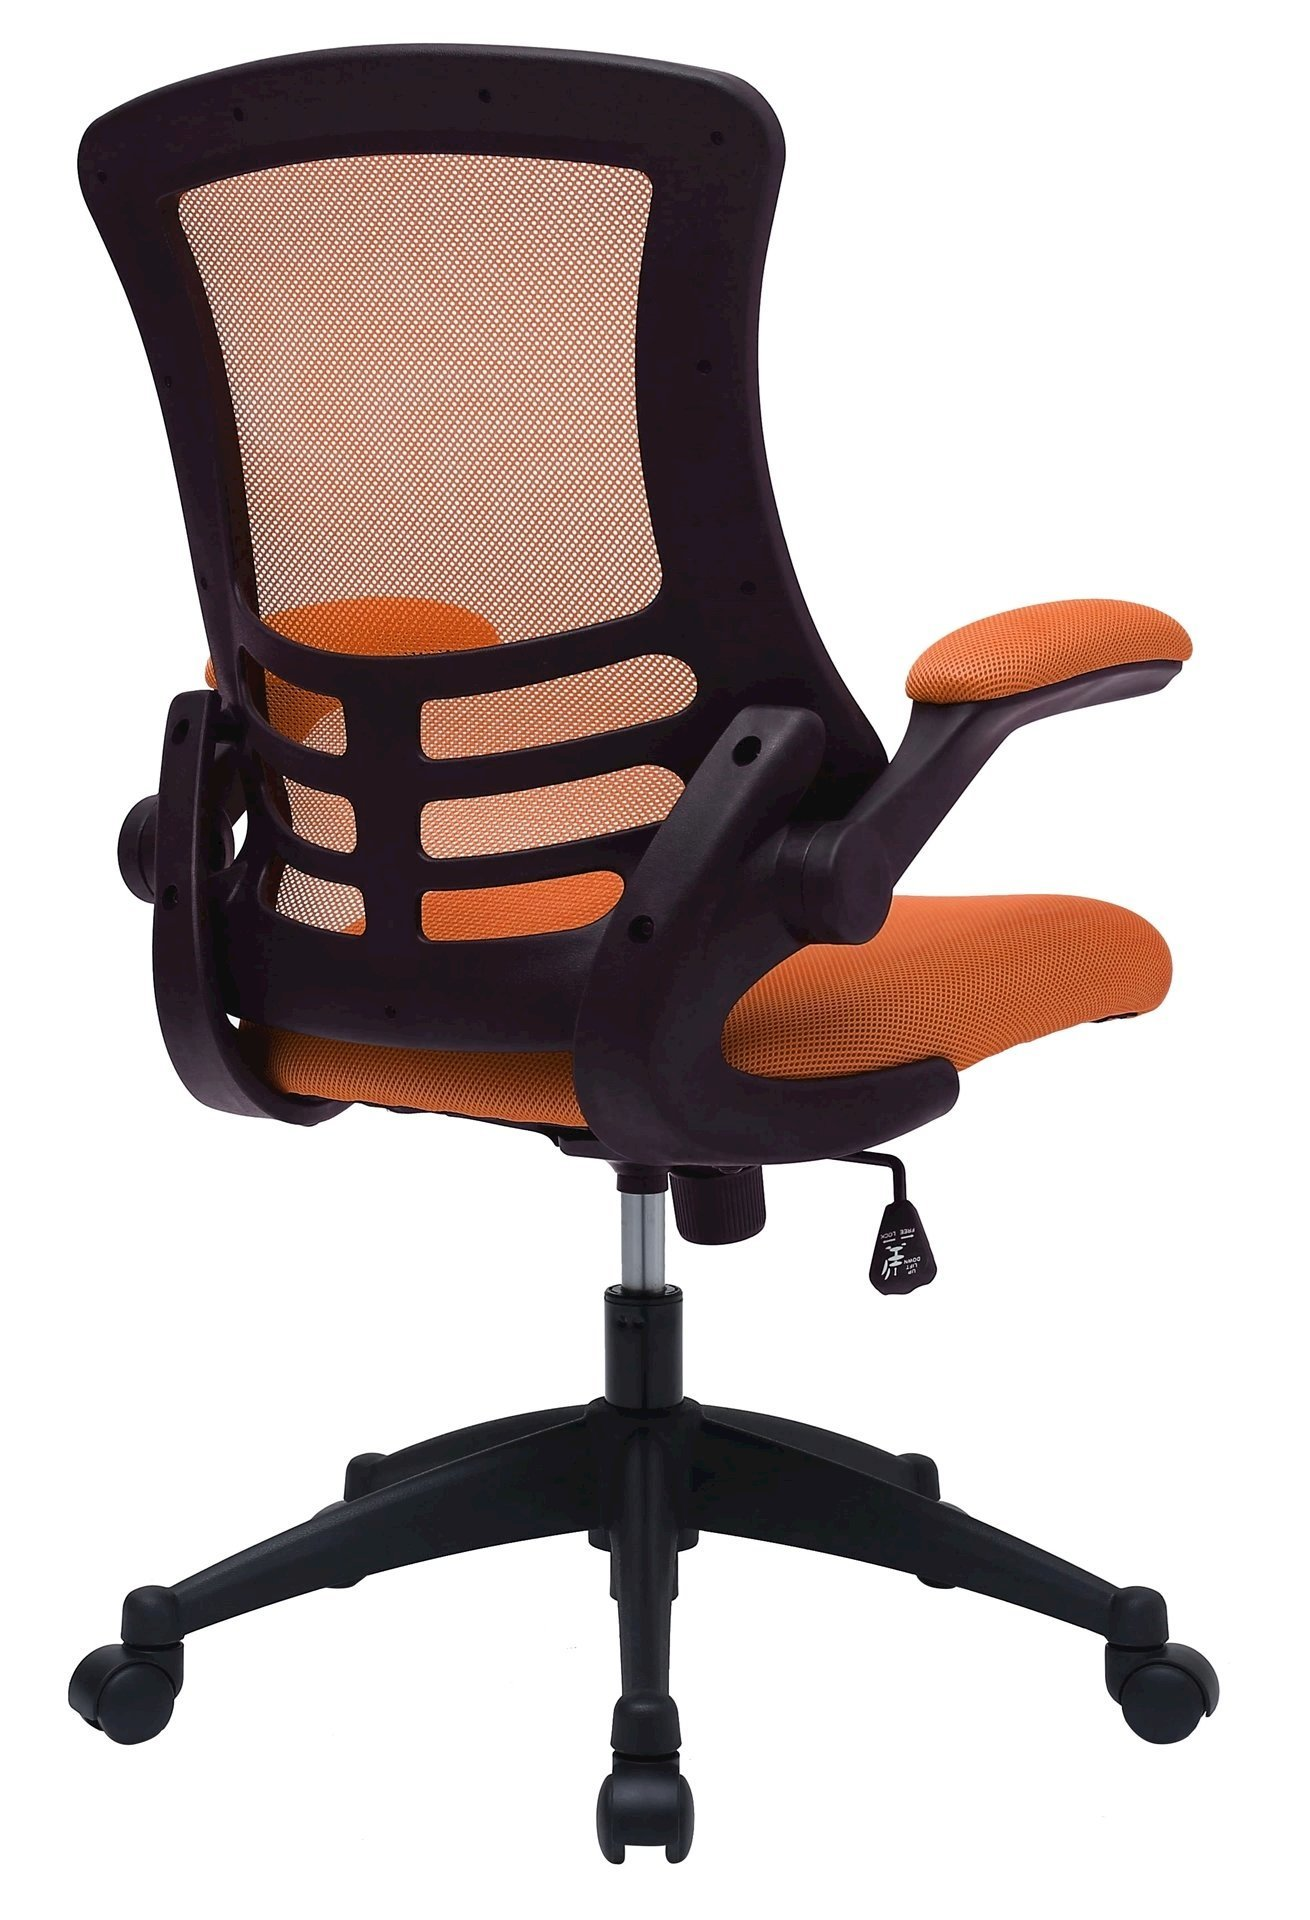 orange office chairs uk tatami floor chair canada company luna designer mesh